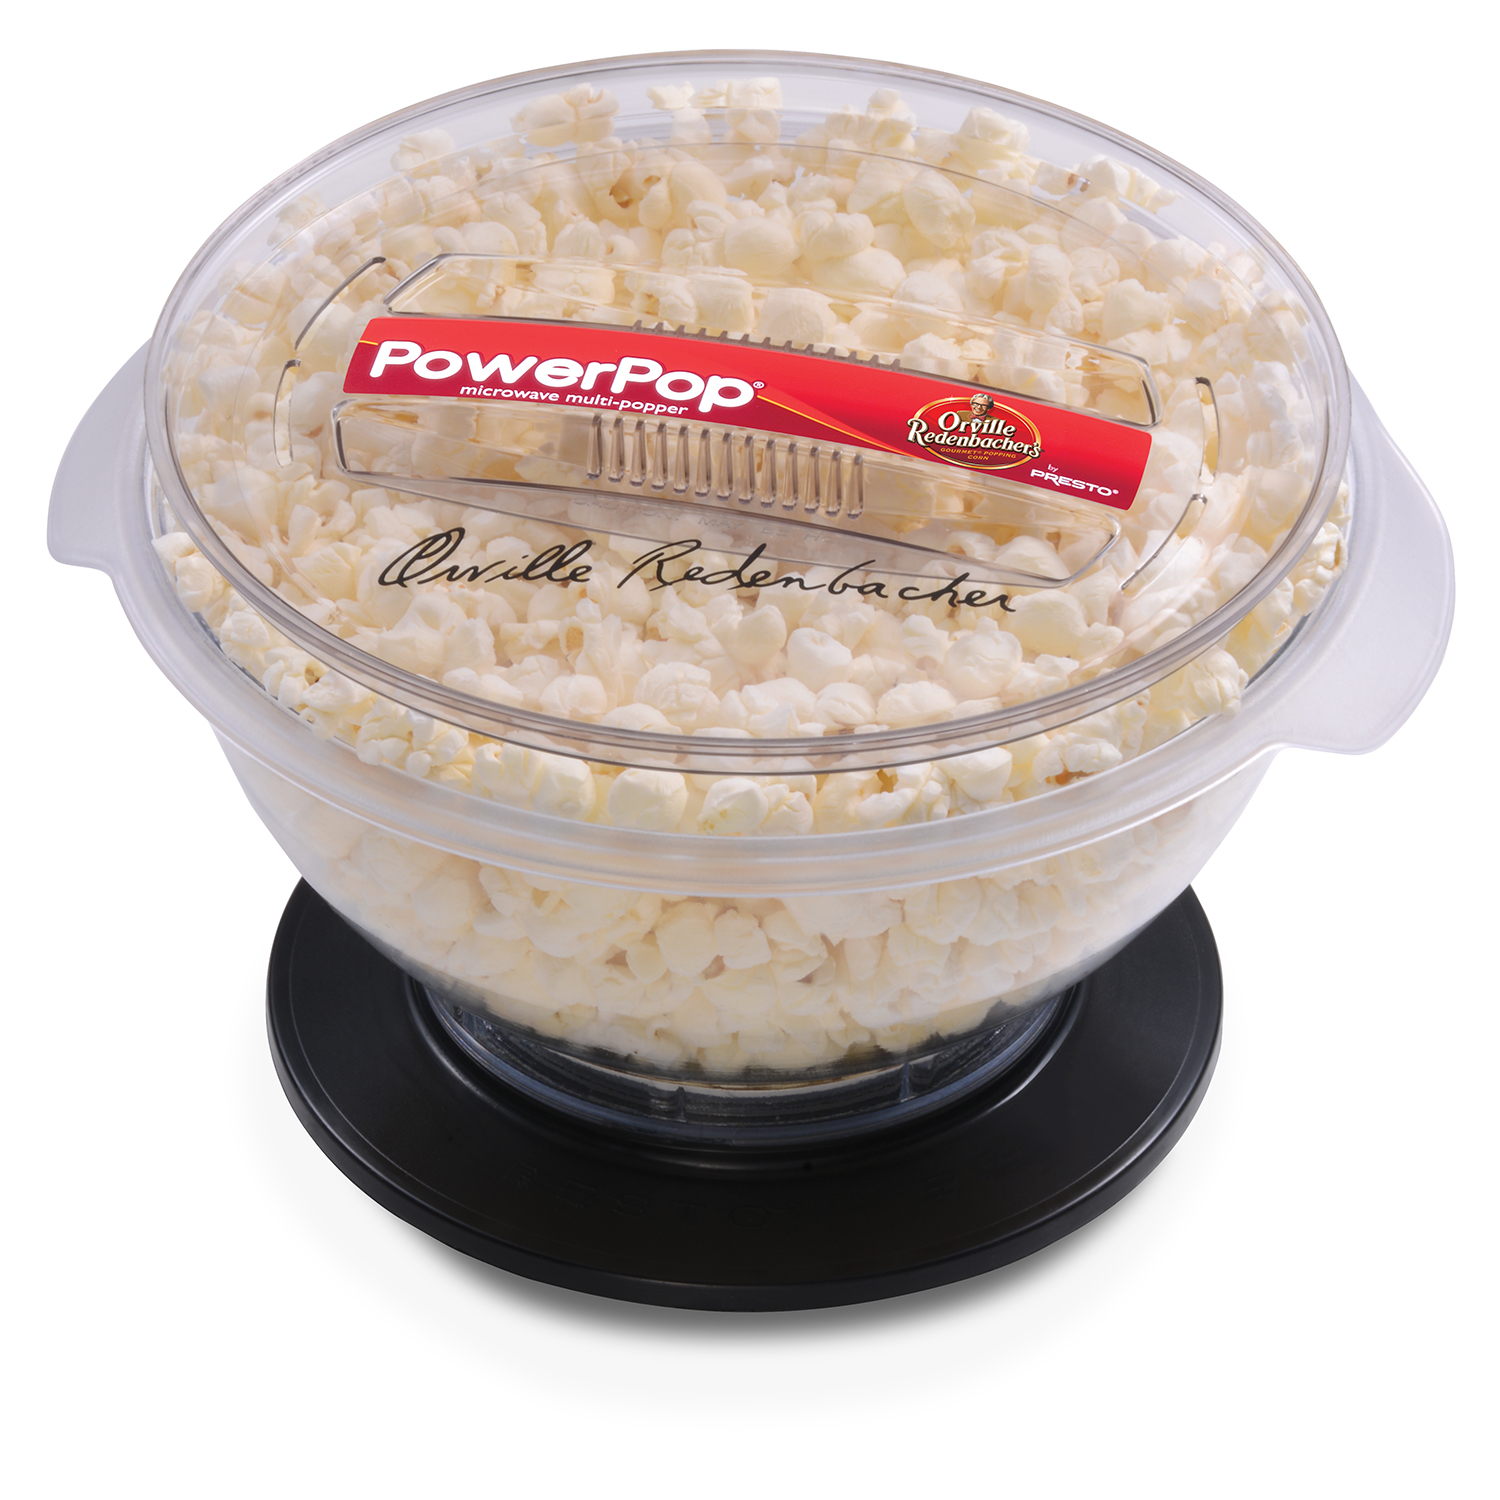 Orville Redenbacher's PowerPop microwave multi-popper by Presto 04830 by National Presto Industries